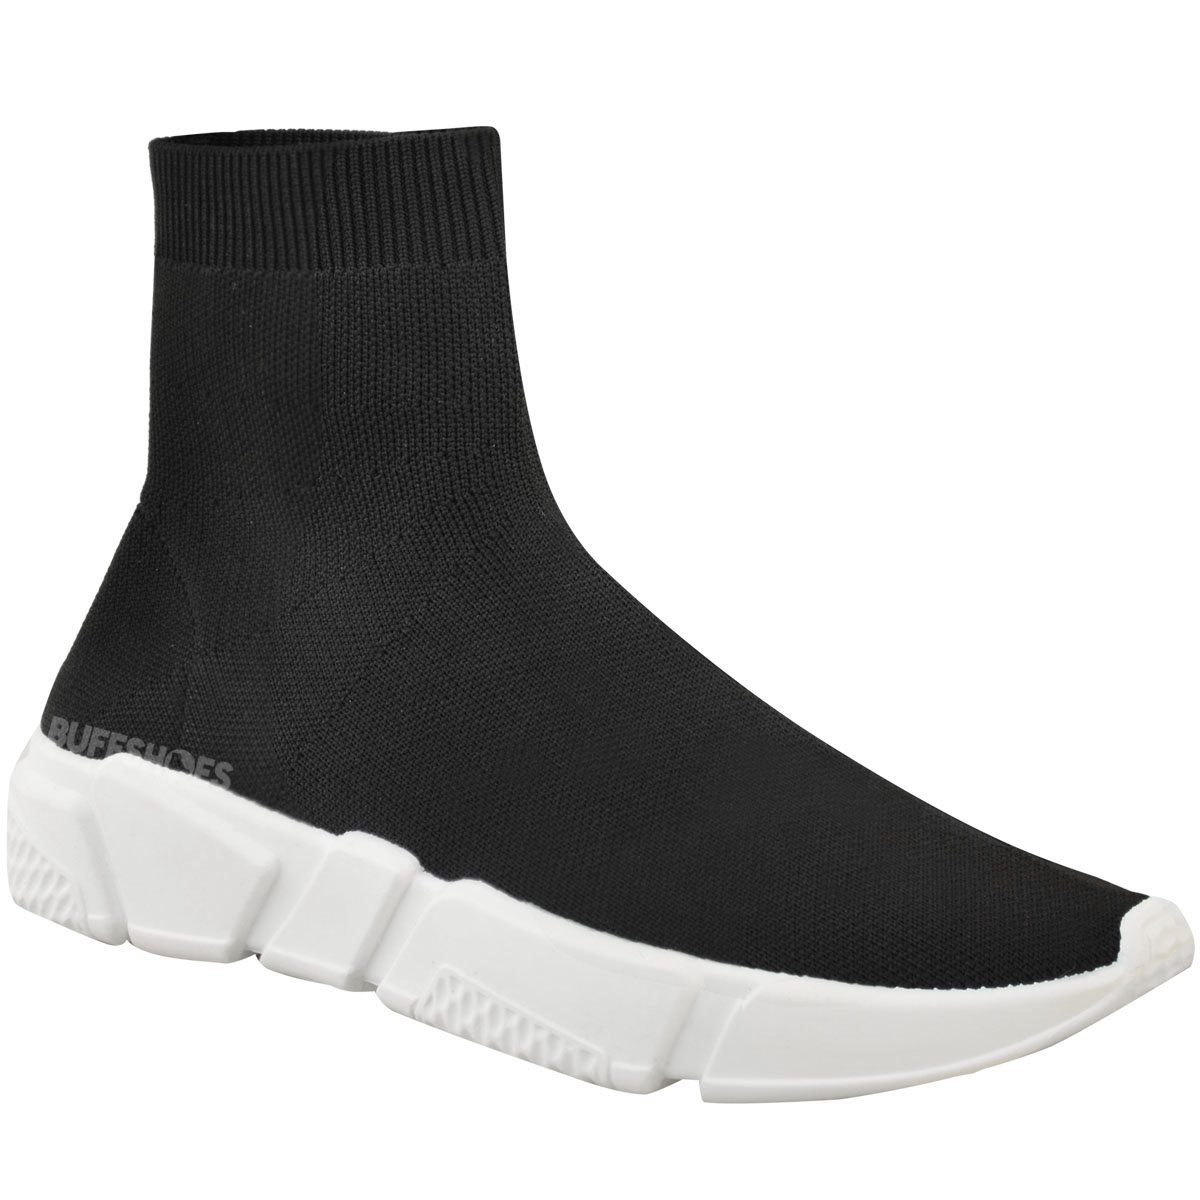 Gym Shoes With Sock Top